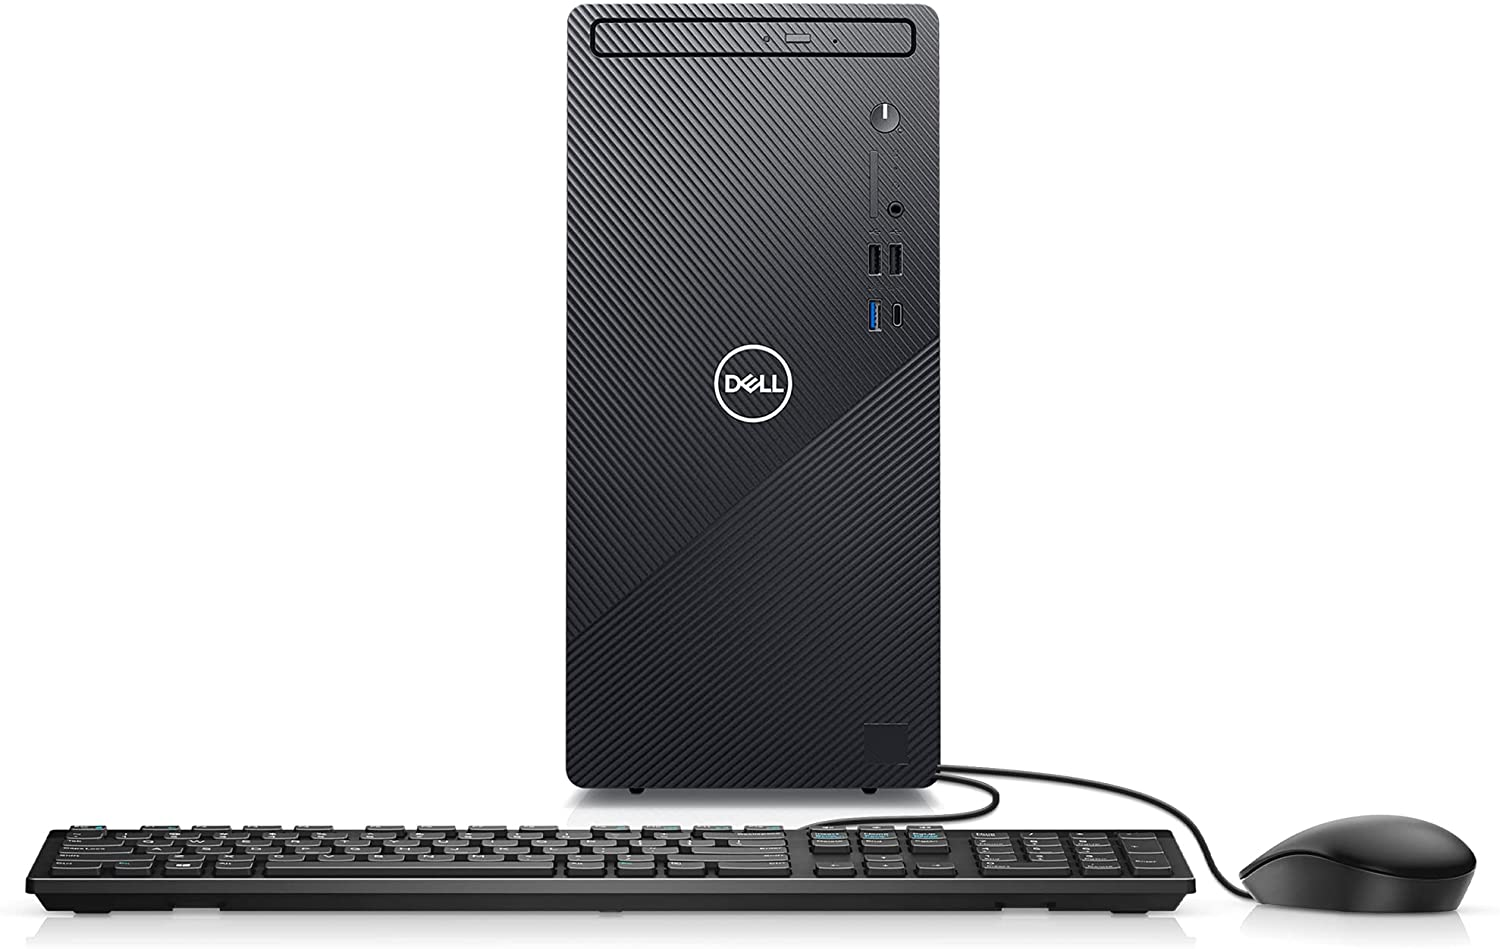 Dell Inspiron 3891 Compact Tower Desktop - Intel Core i3-10105, 8GB DDR4 RAM, 256GB SSD, Intel UHD Graphics 630 with Shared Graphics Memory, Windows 10 Home - Black (Latest Model)